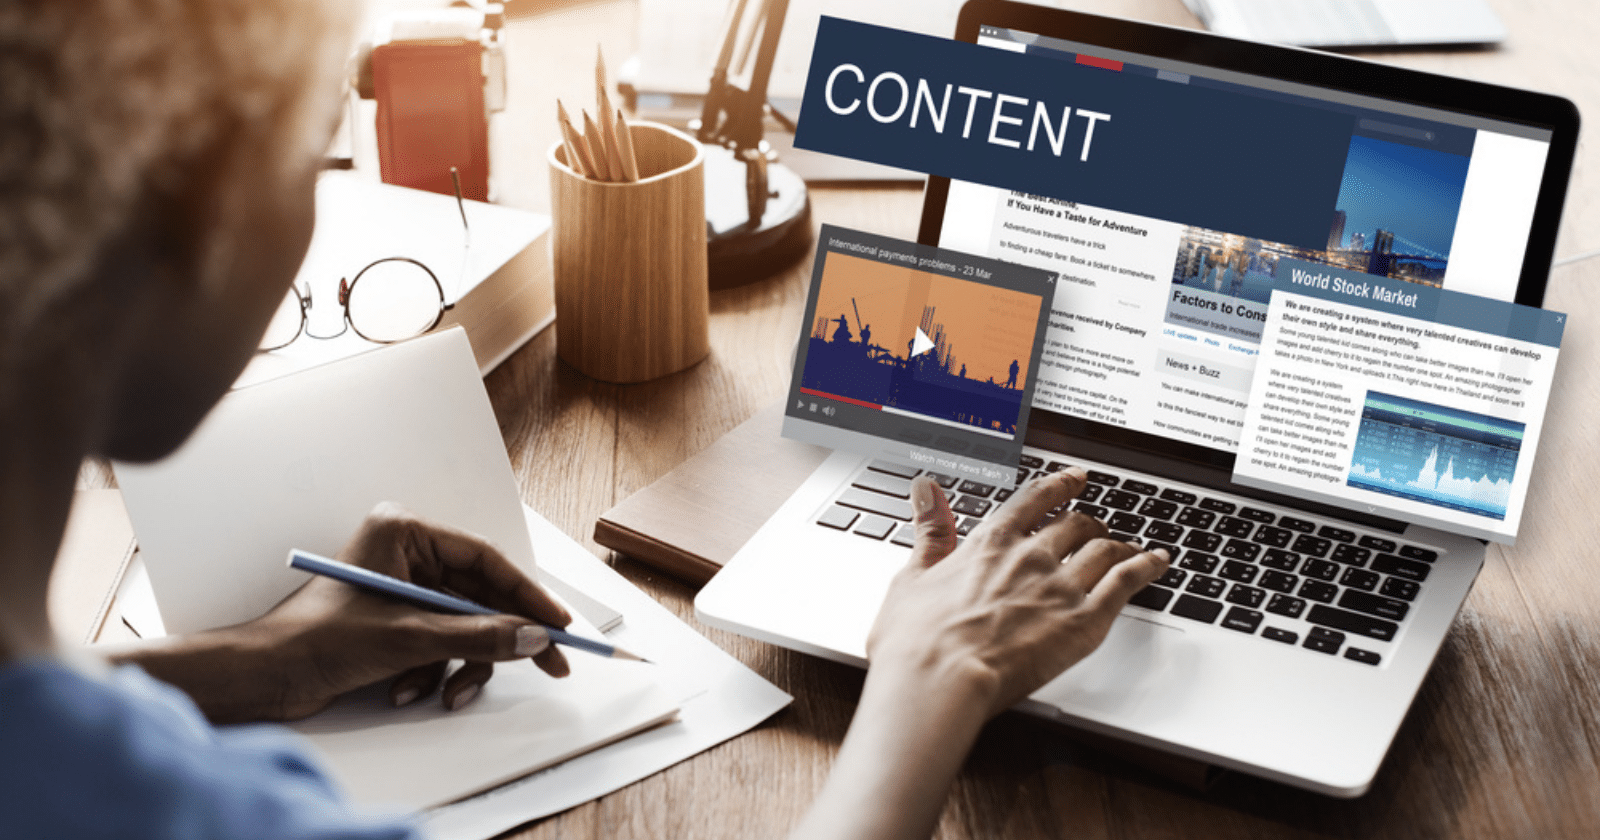 The Ultimate SEO Content Creation Guide via @sejournal, @ronlieback